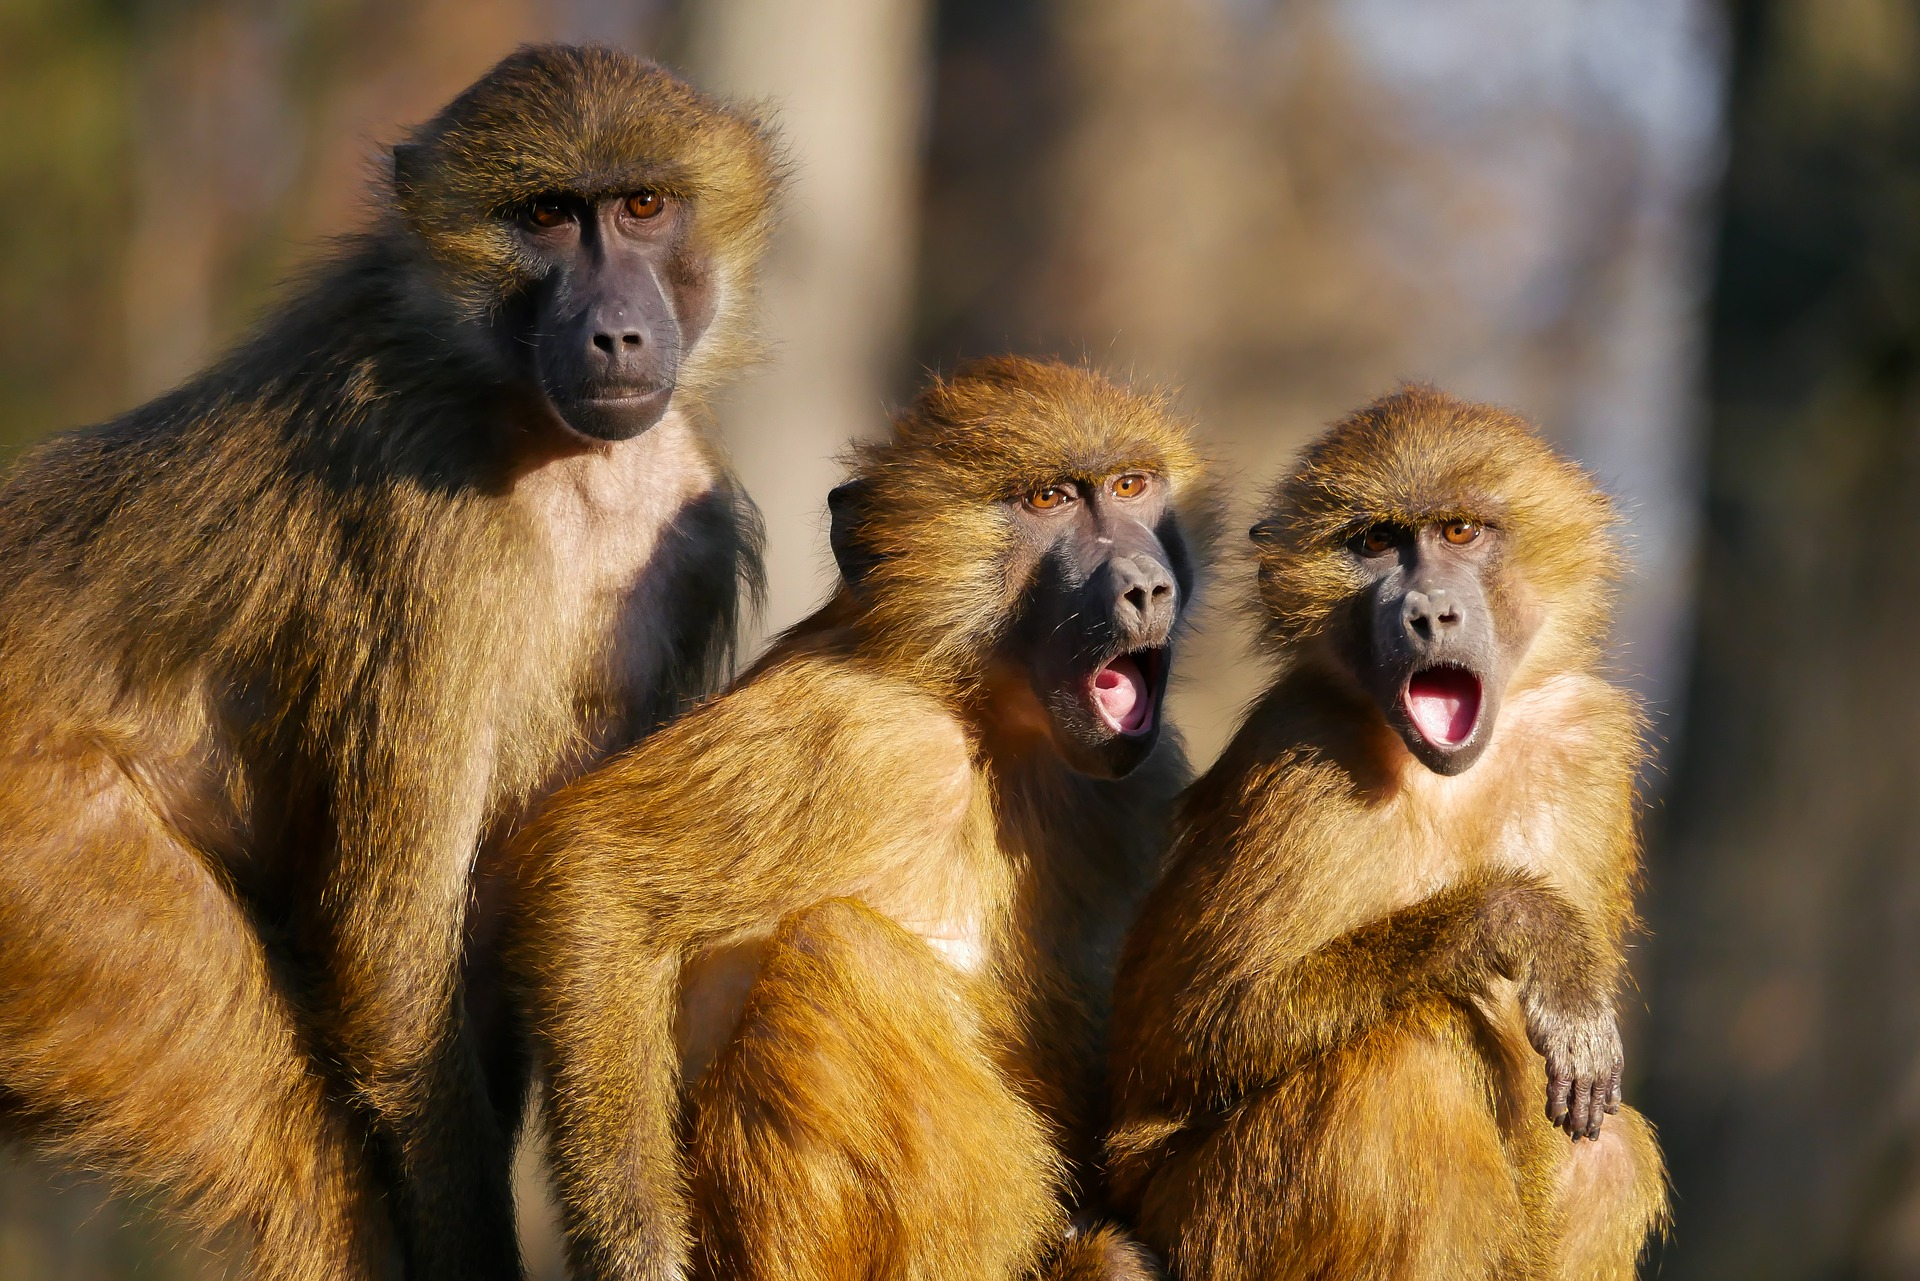 3 monkeys one with mouth closed two with mouth open in surprise